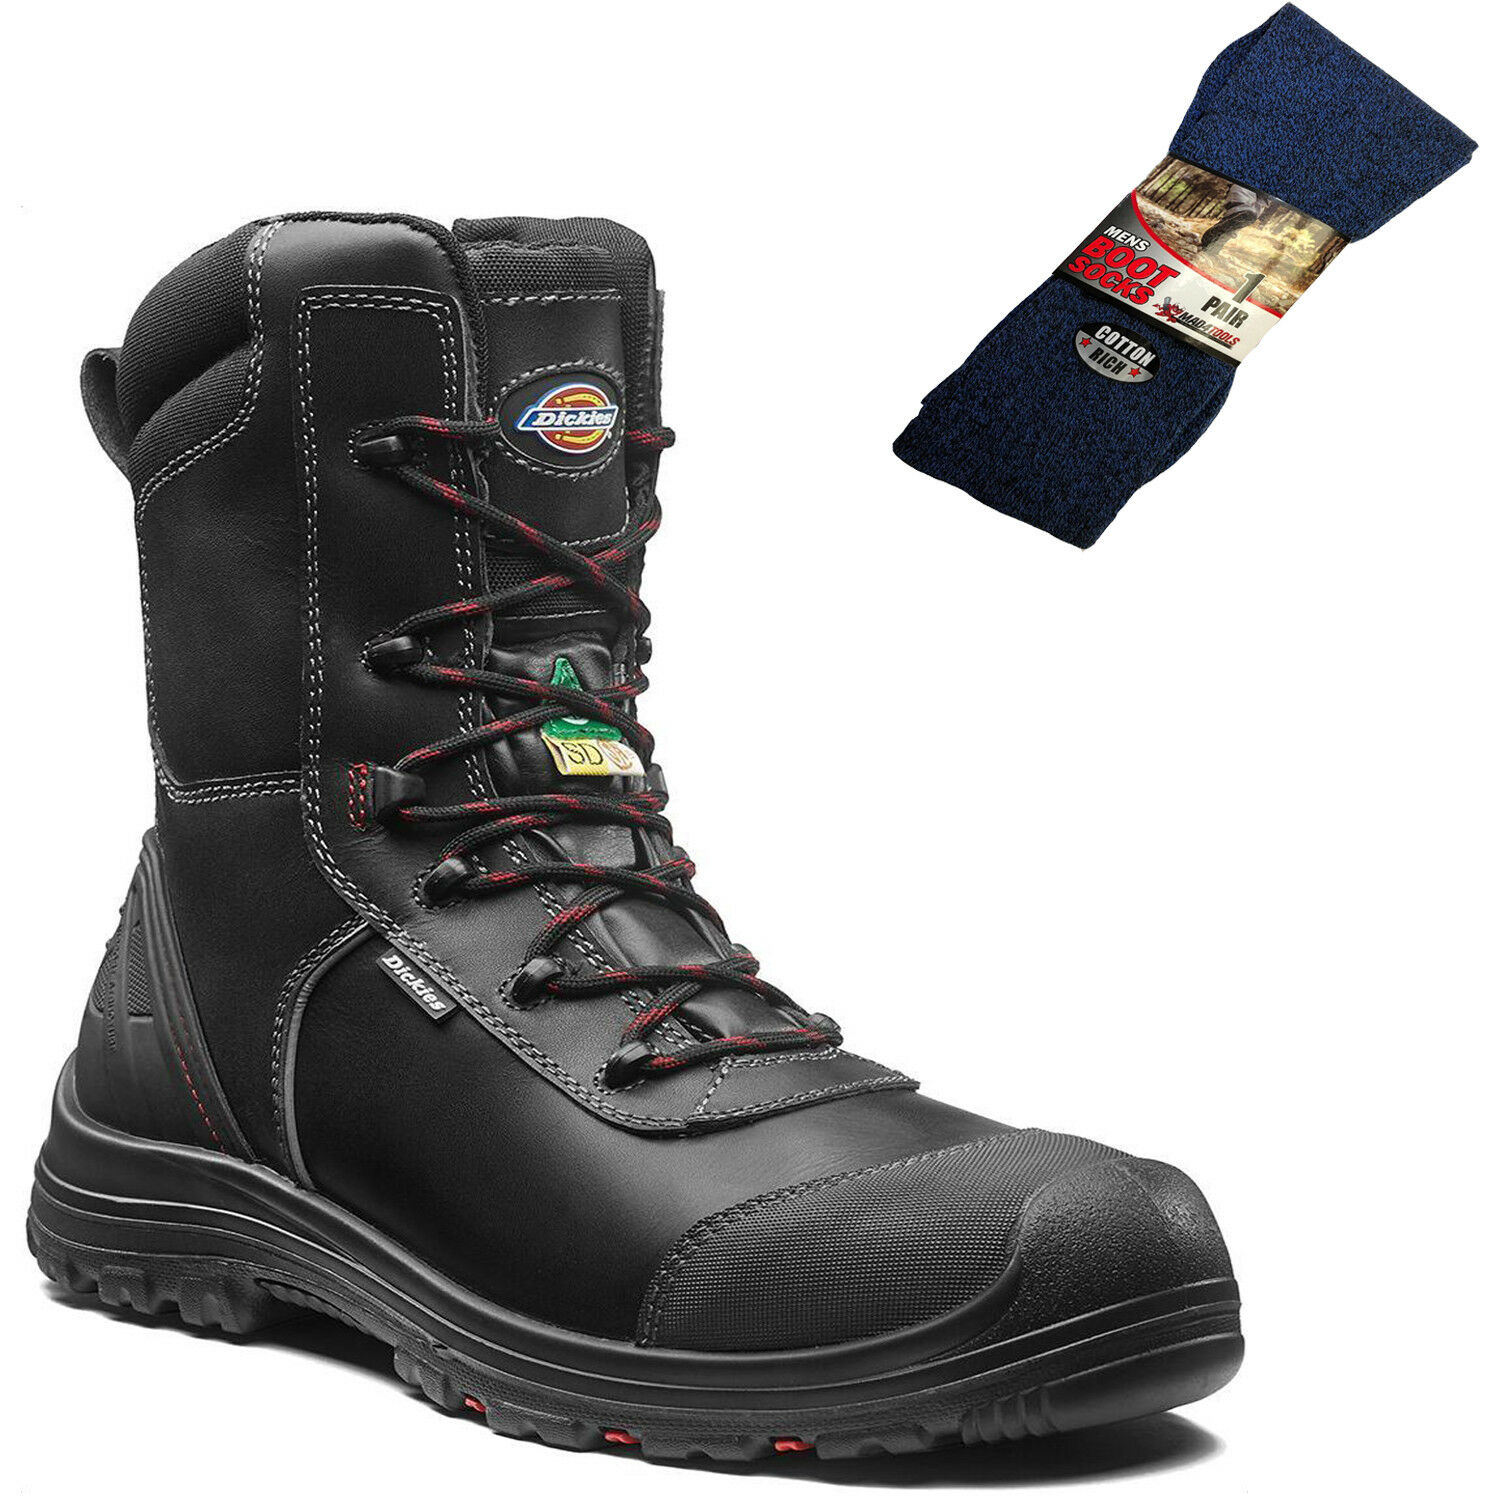 Dickies TX Pro Safety Work Boots Black & 1 Pair of Boot Socks